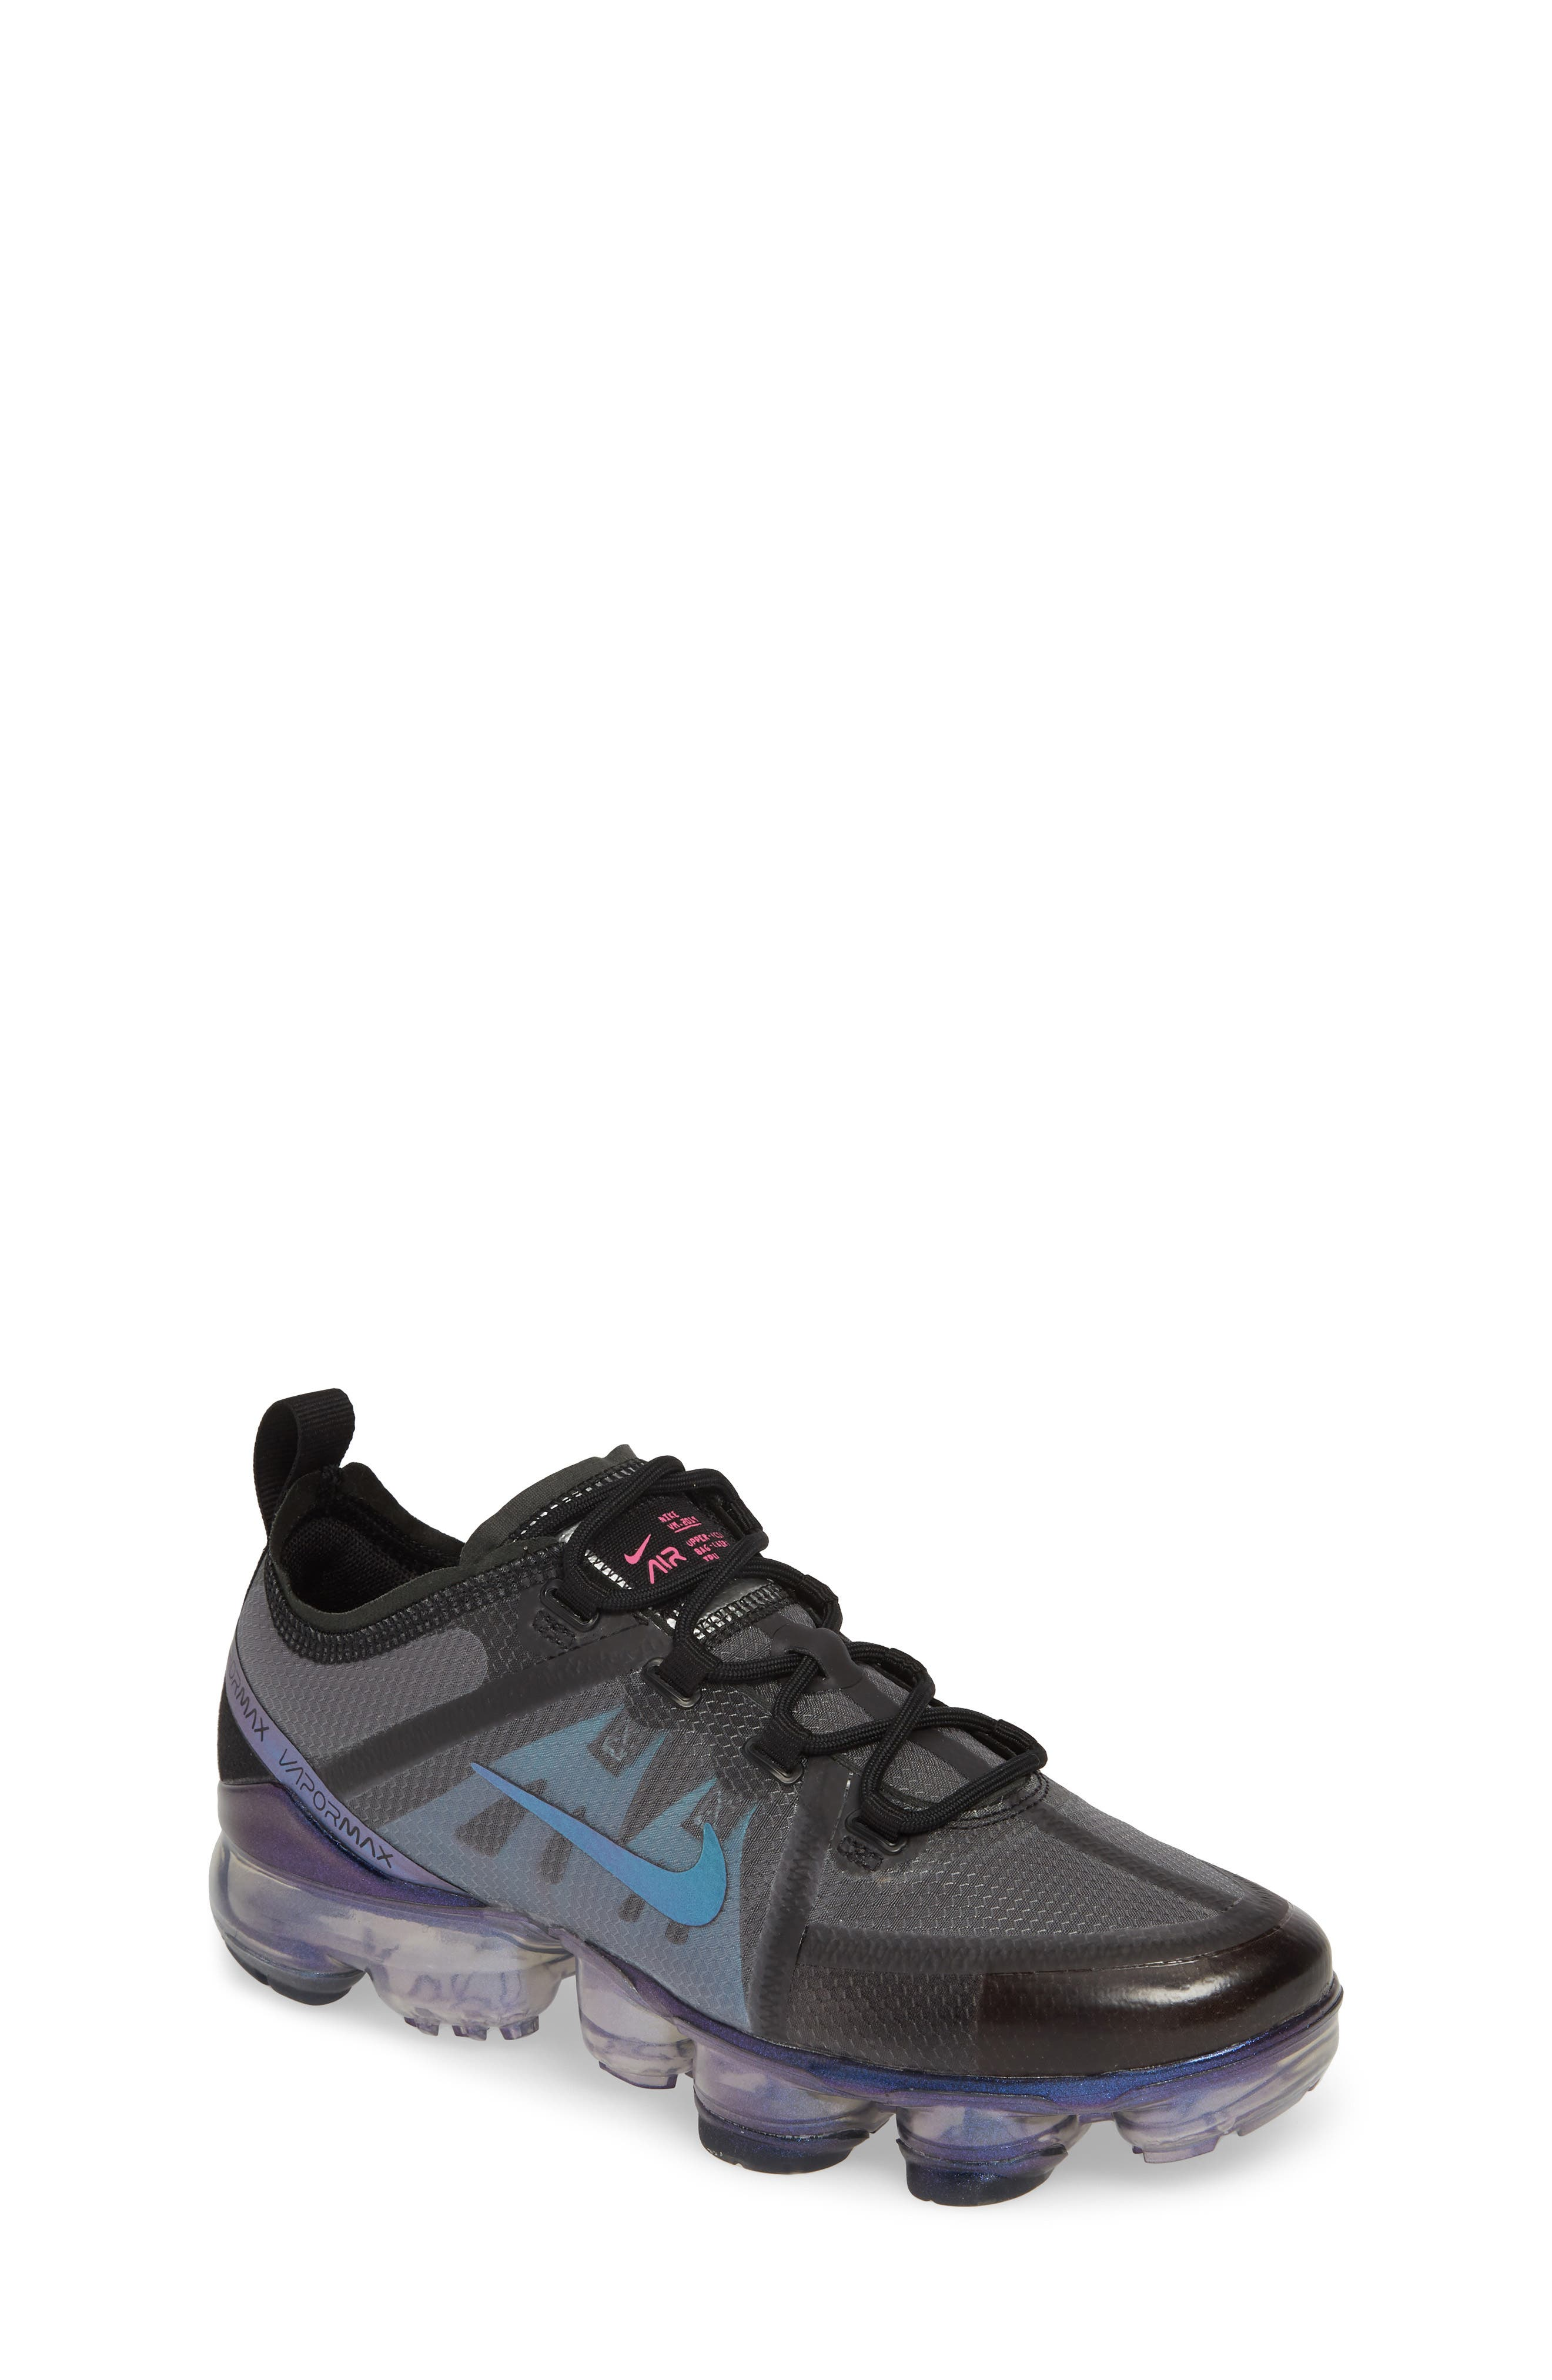 NIKE Air VaporMax 2019 Running Shoe, Main, color, BLACK/ FUCHSIA-ANTHRACITE